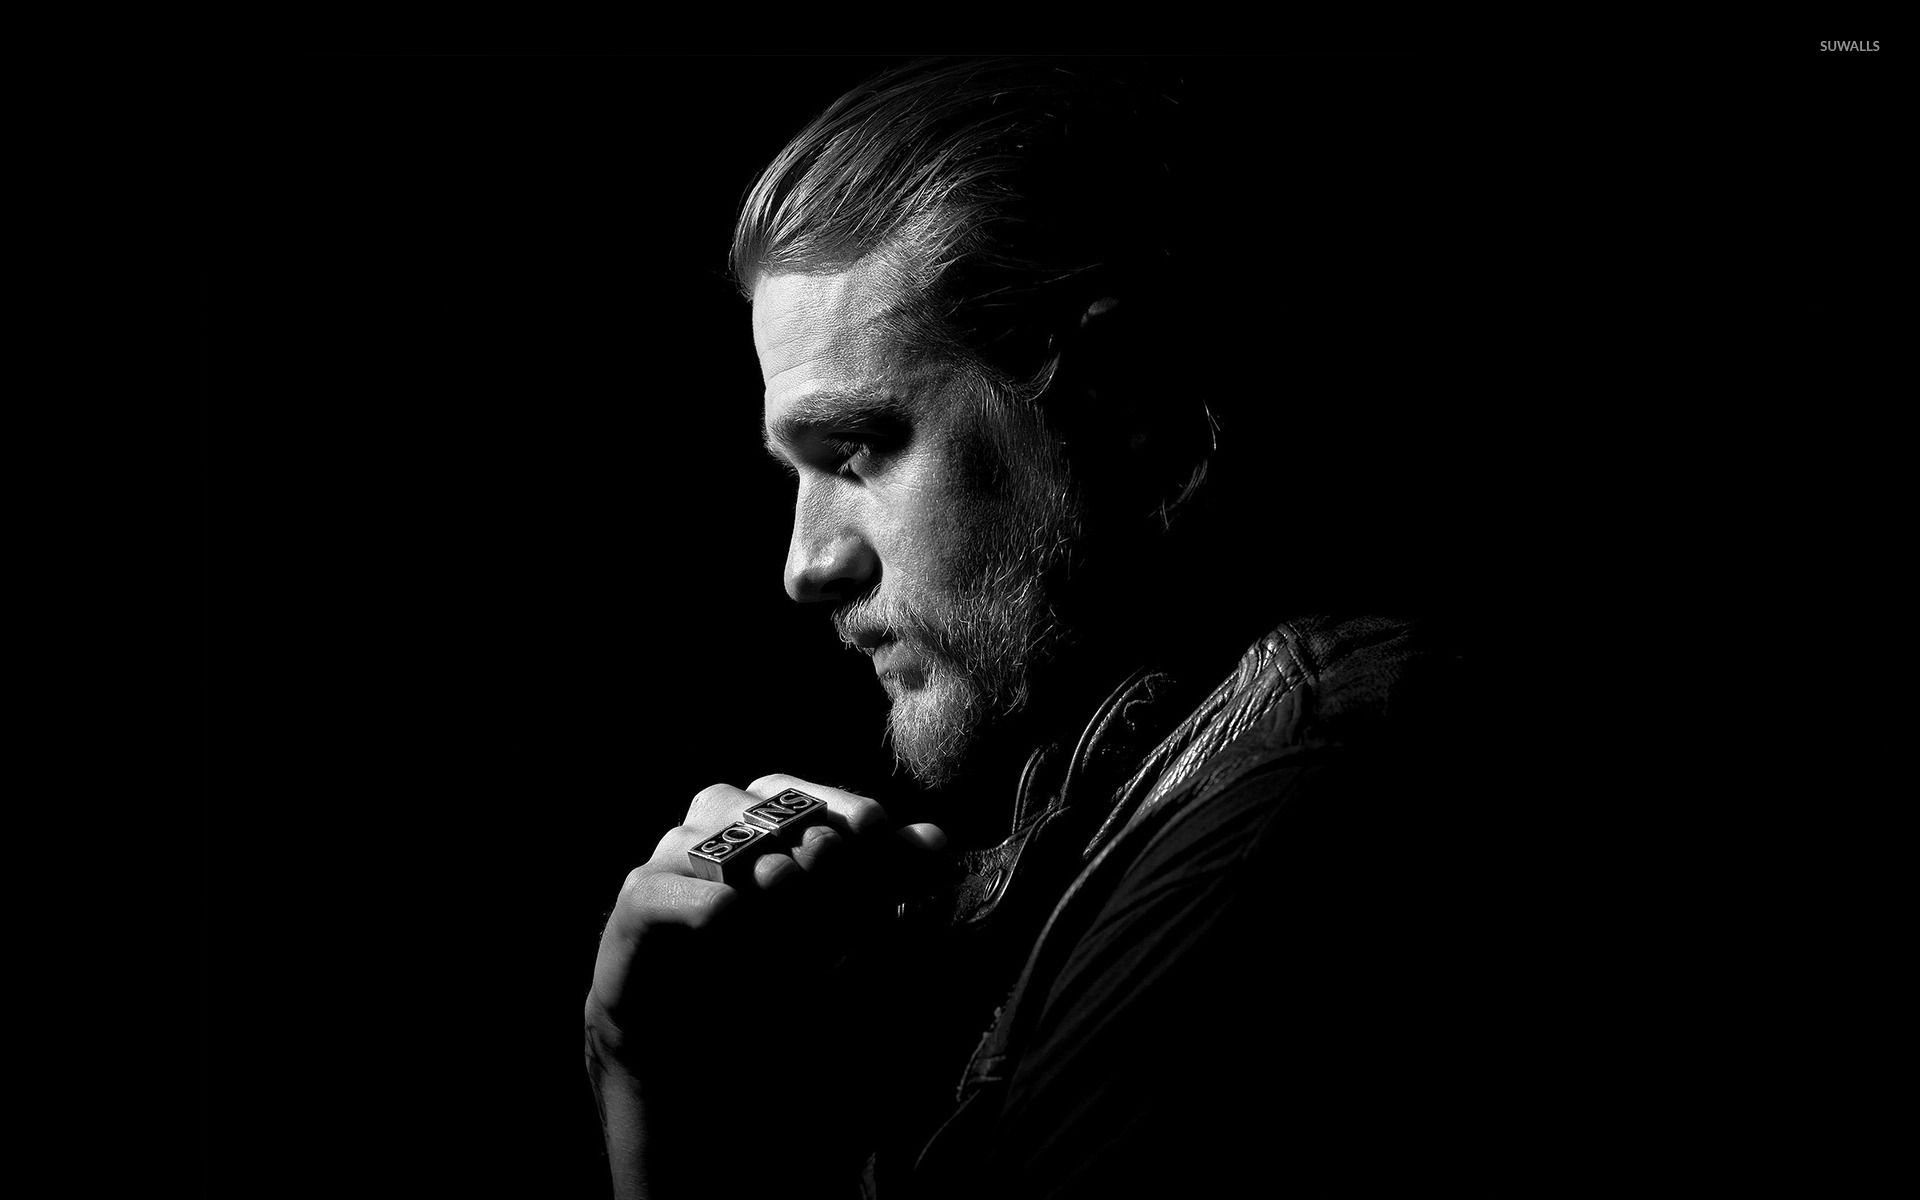 Sons Of Anarchy Wallpapers Top Free Sons Of Anarchy Backgrounds